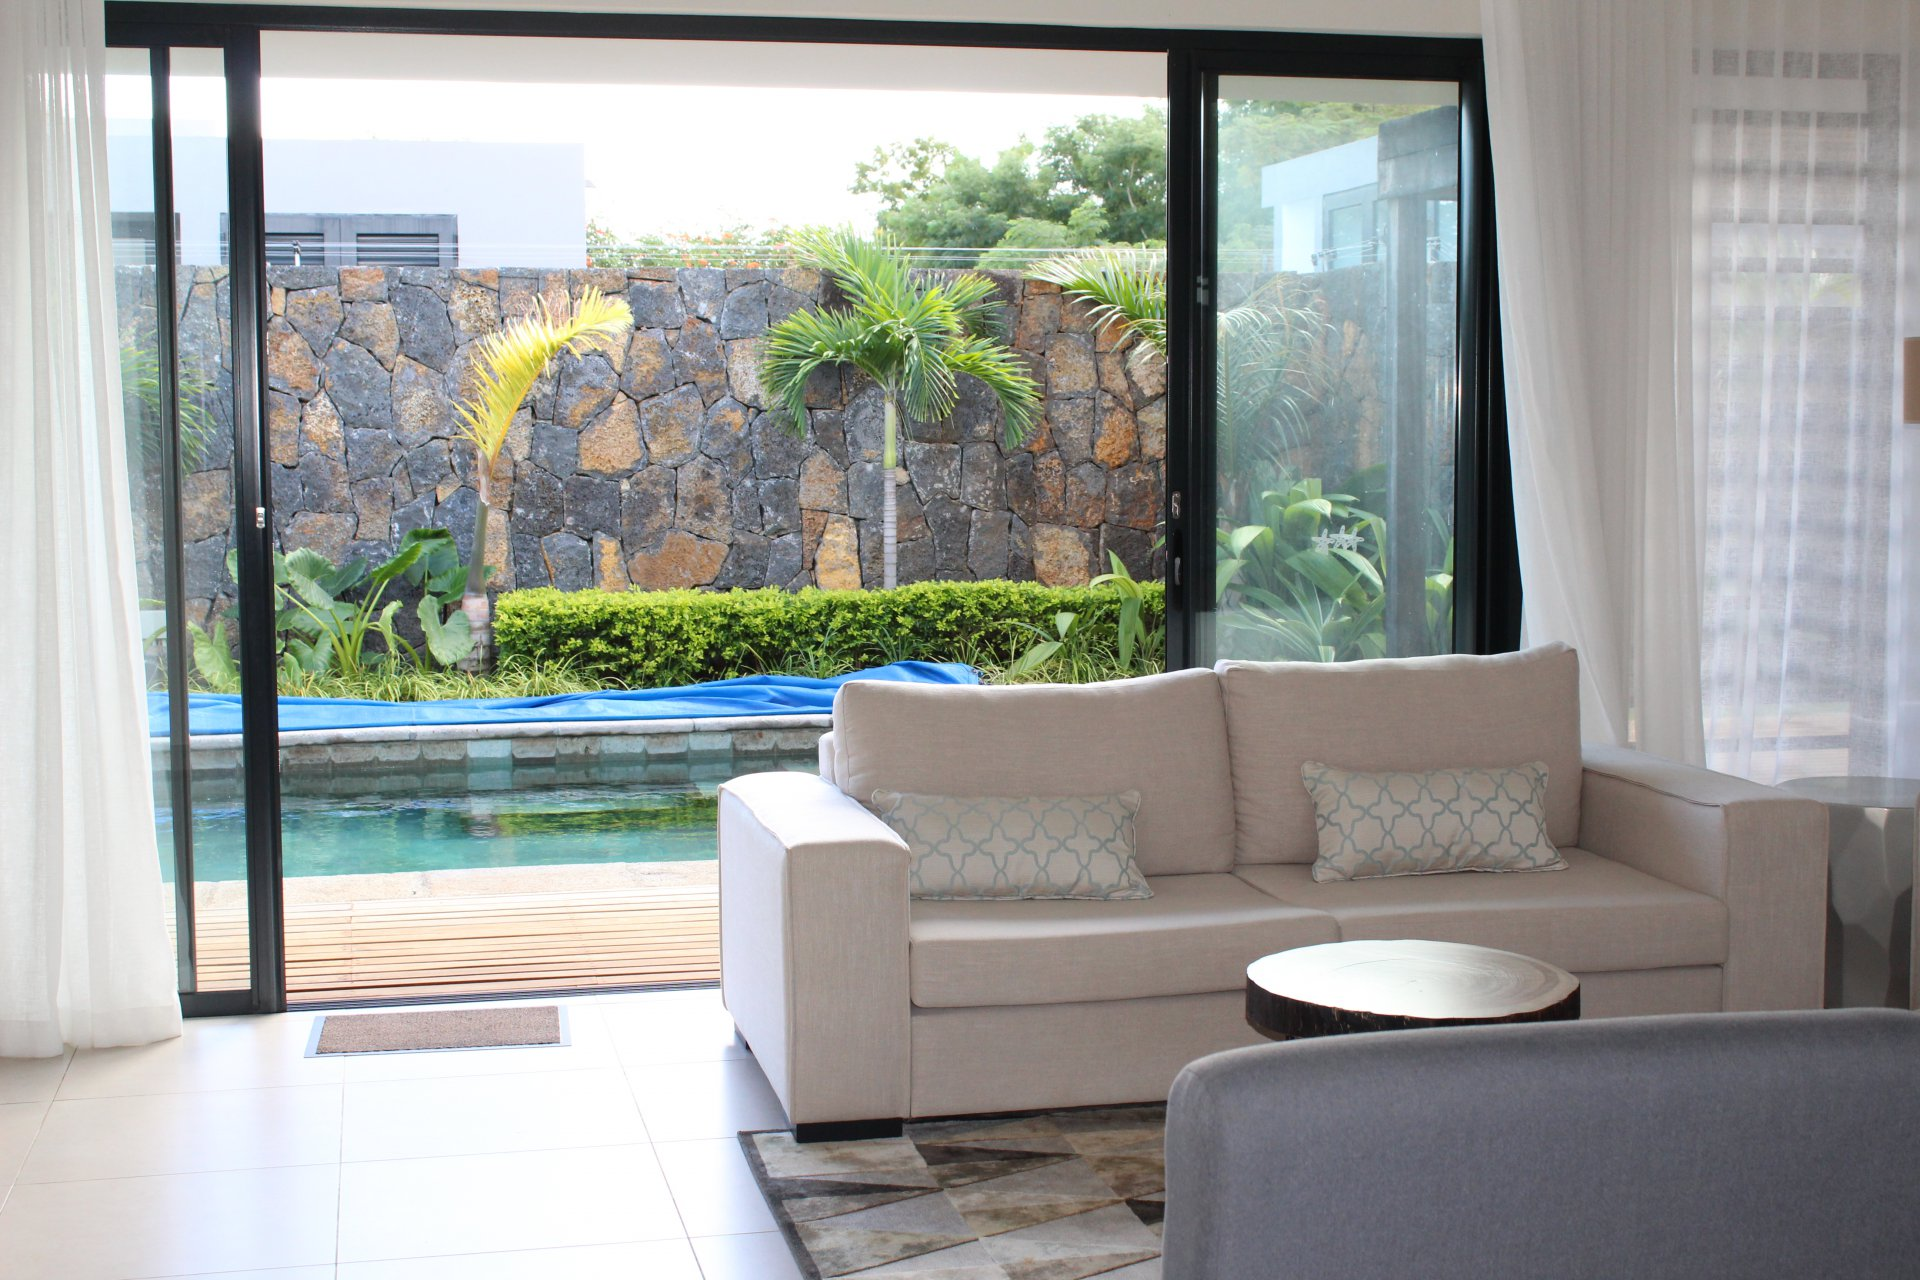 Typical island-style living environment villa